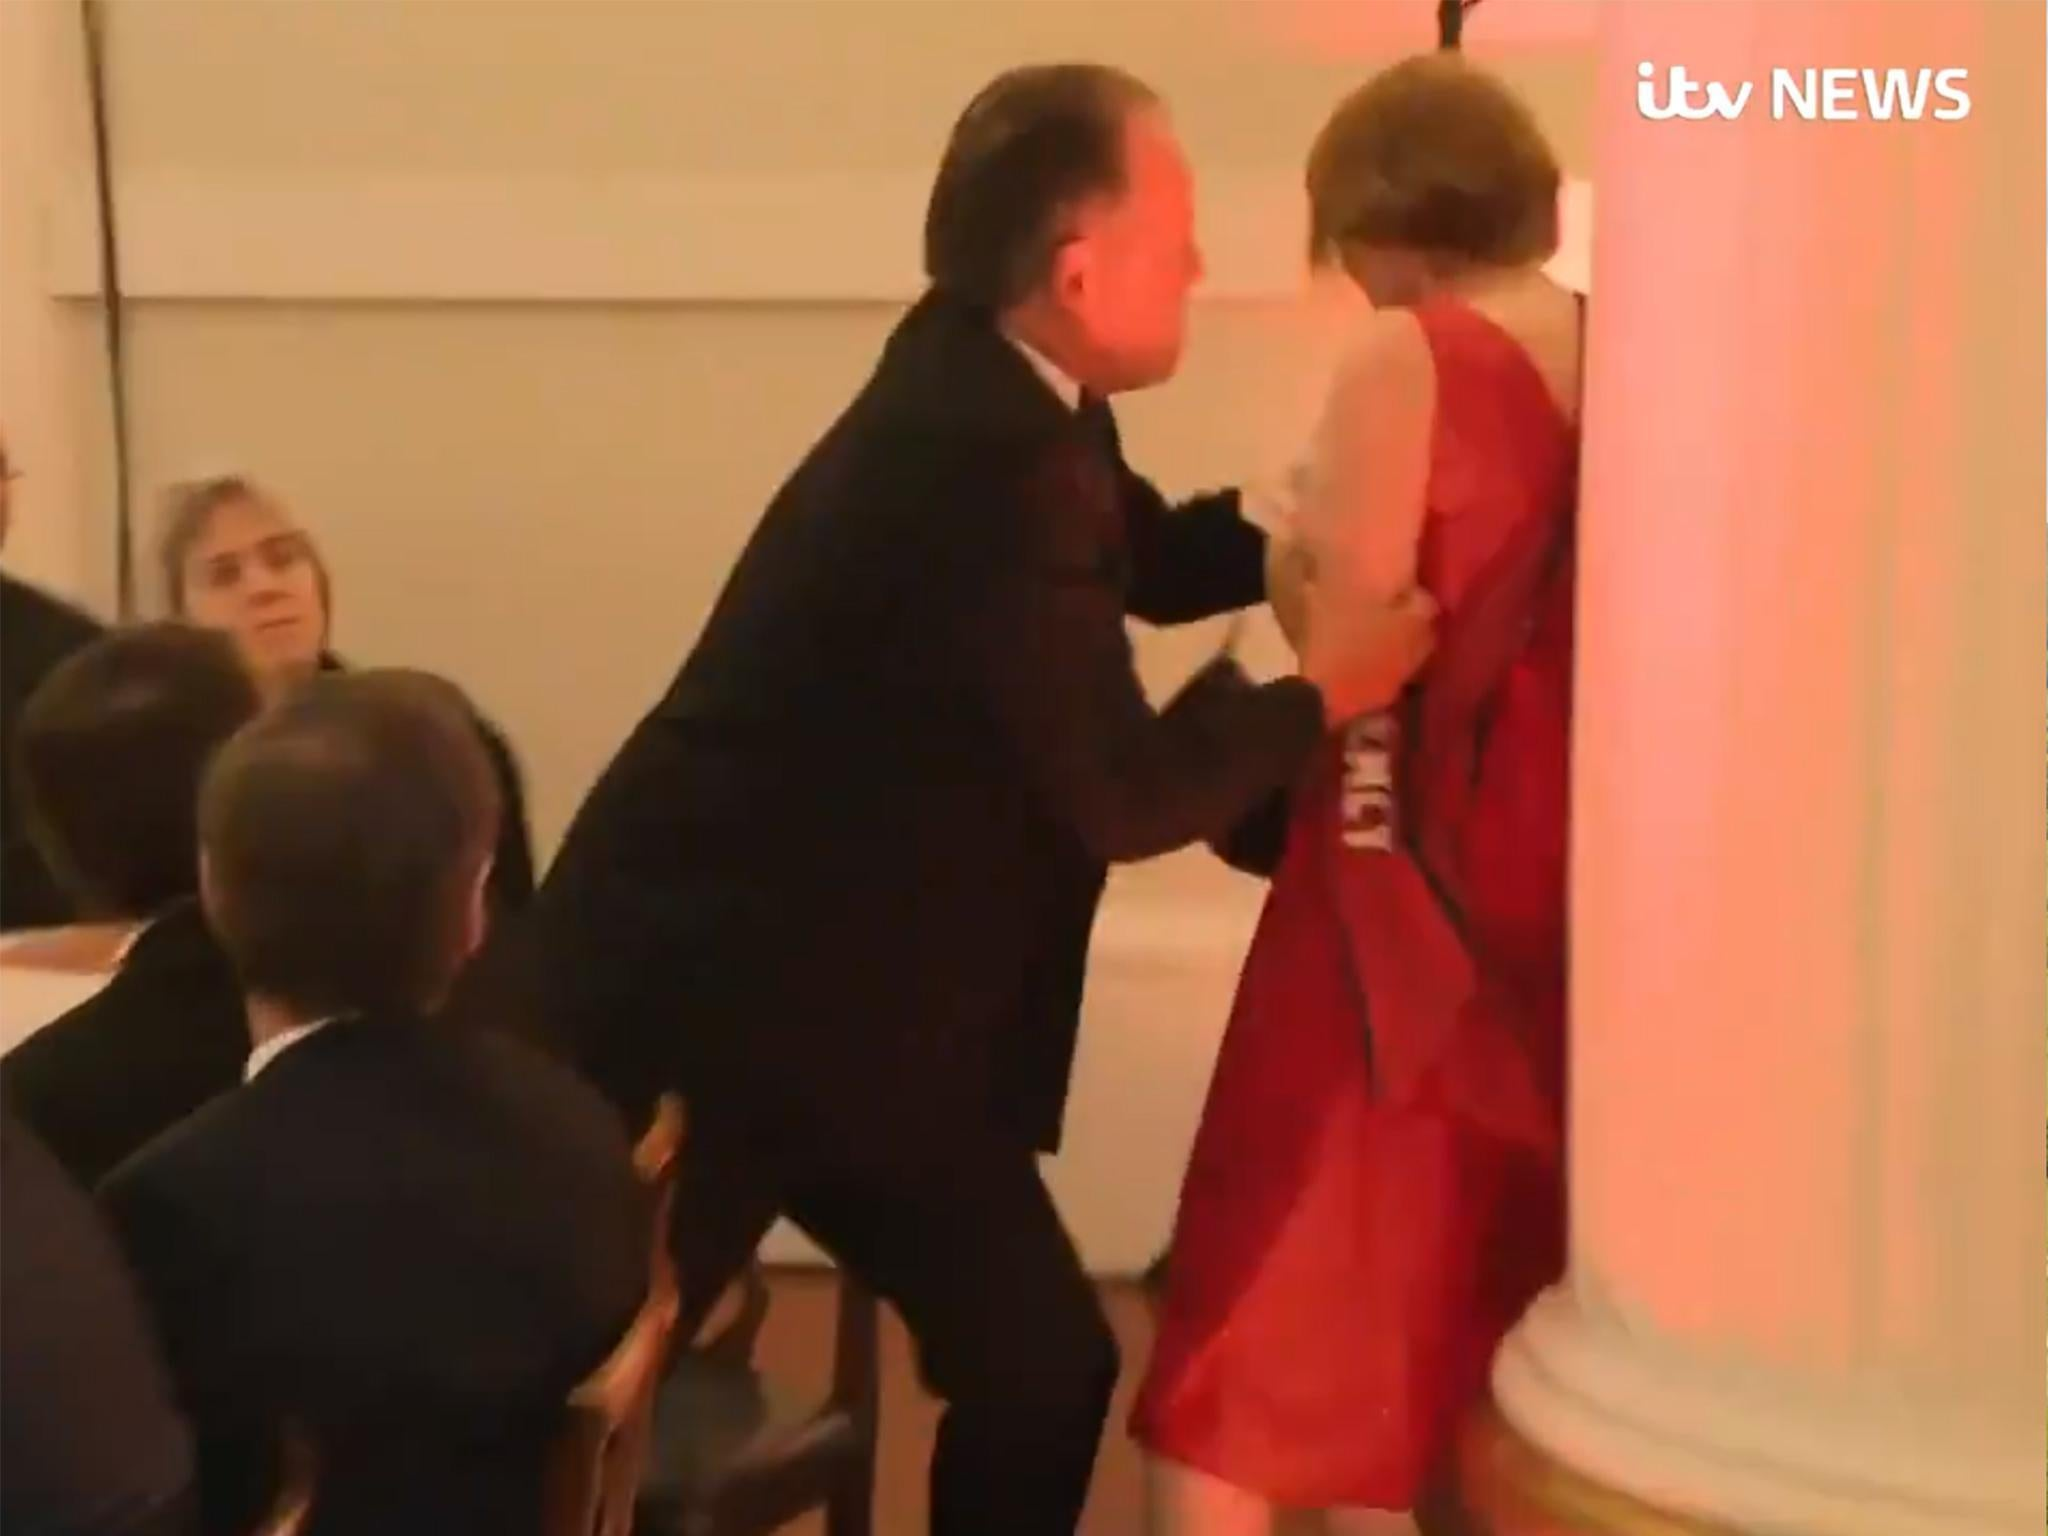 The scariest thing about the video of Mark Field assaulting a protester is that no one spoke up